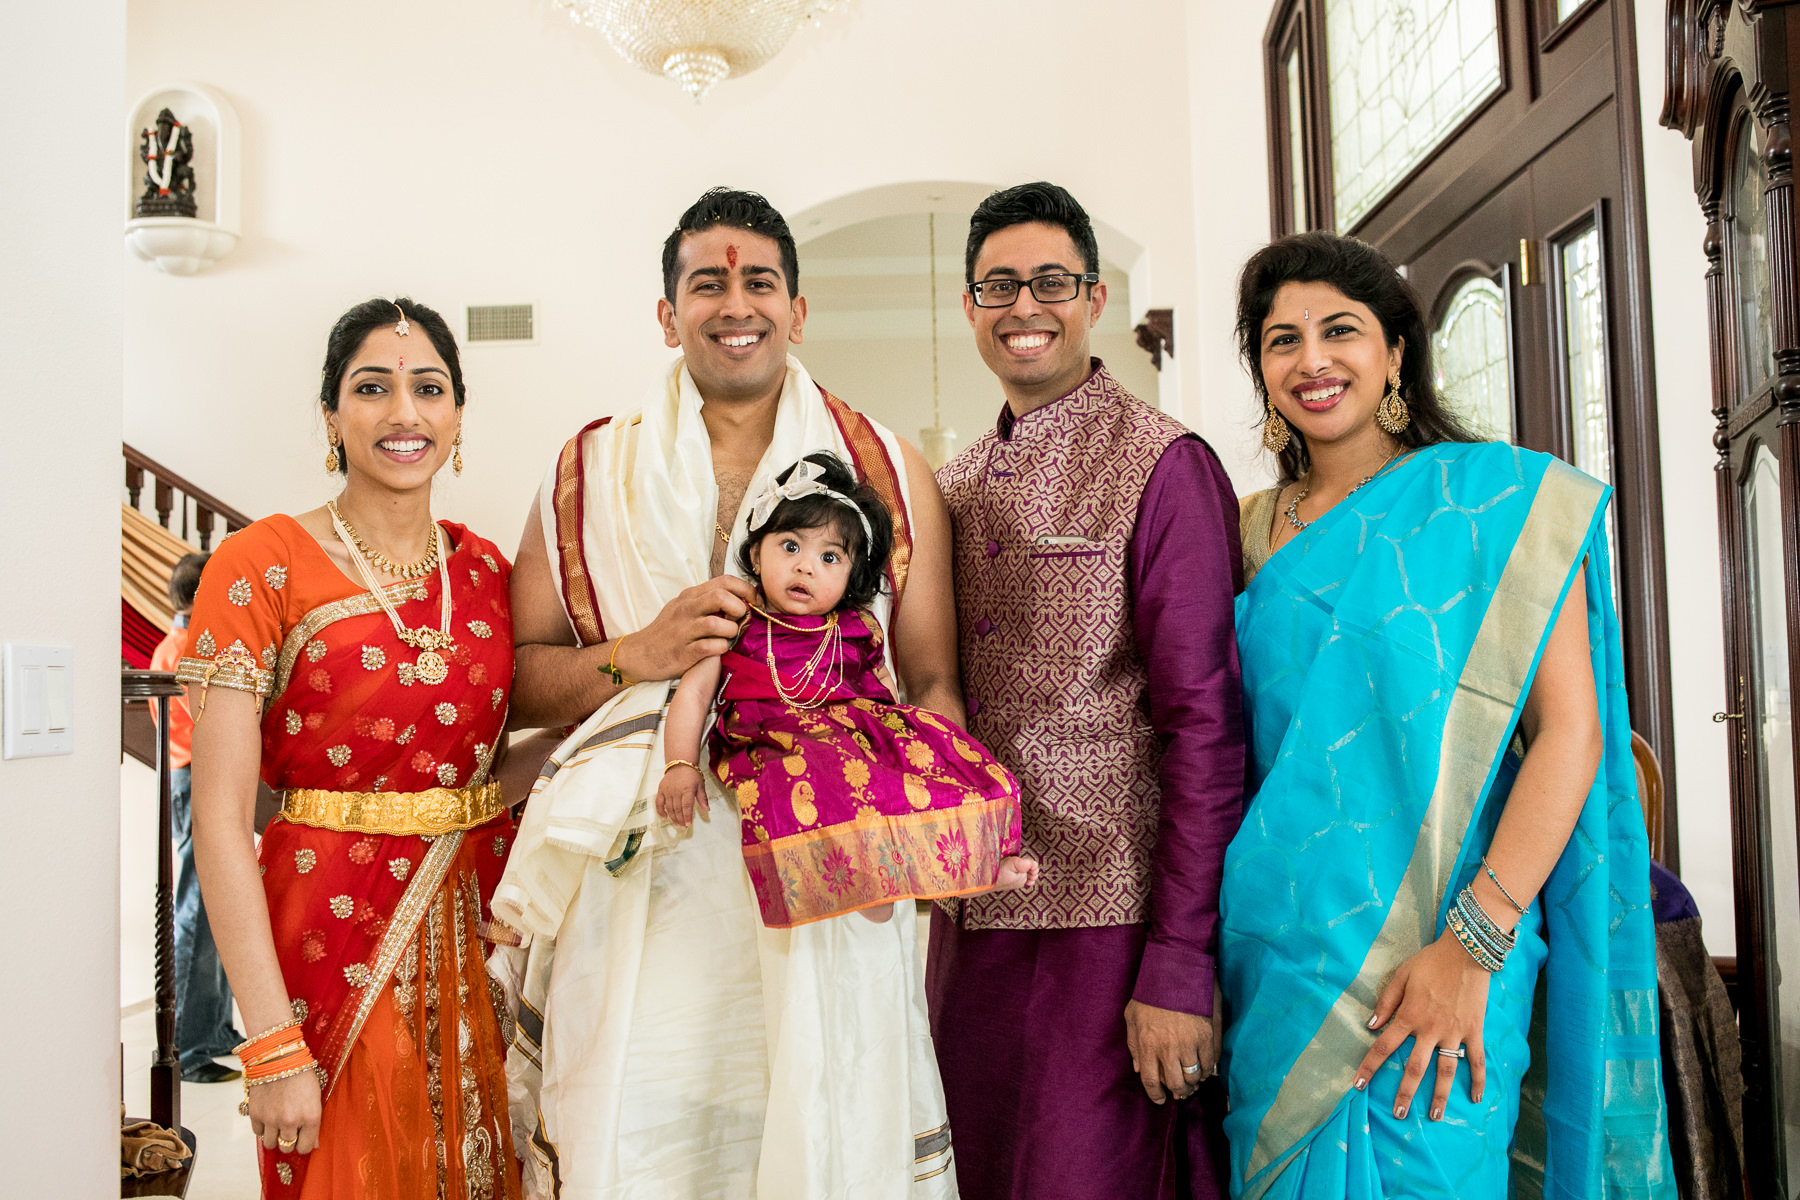 portrait of indian family sibilings during wedding day